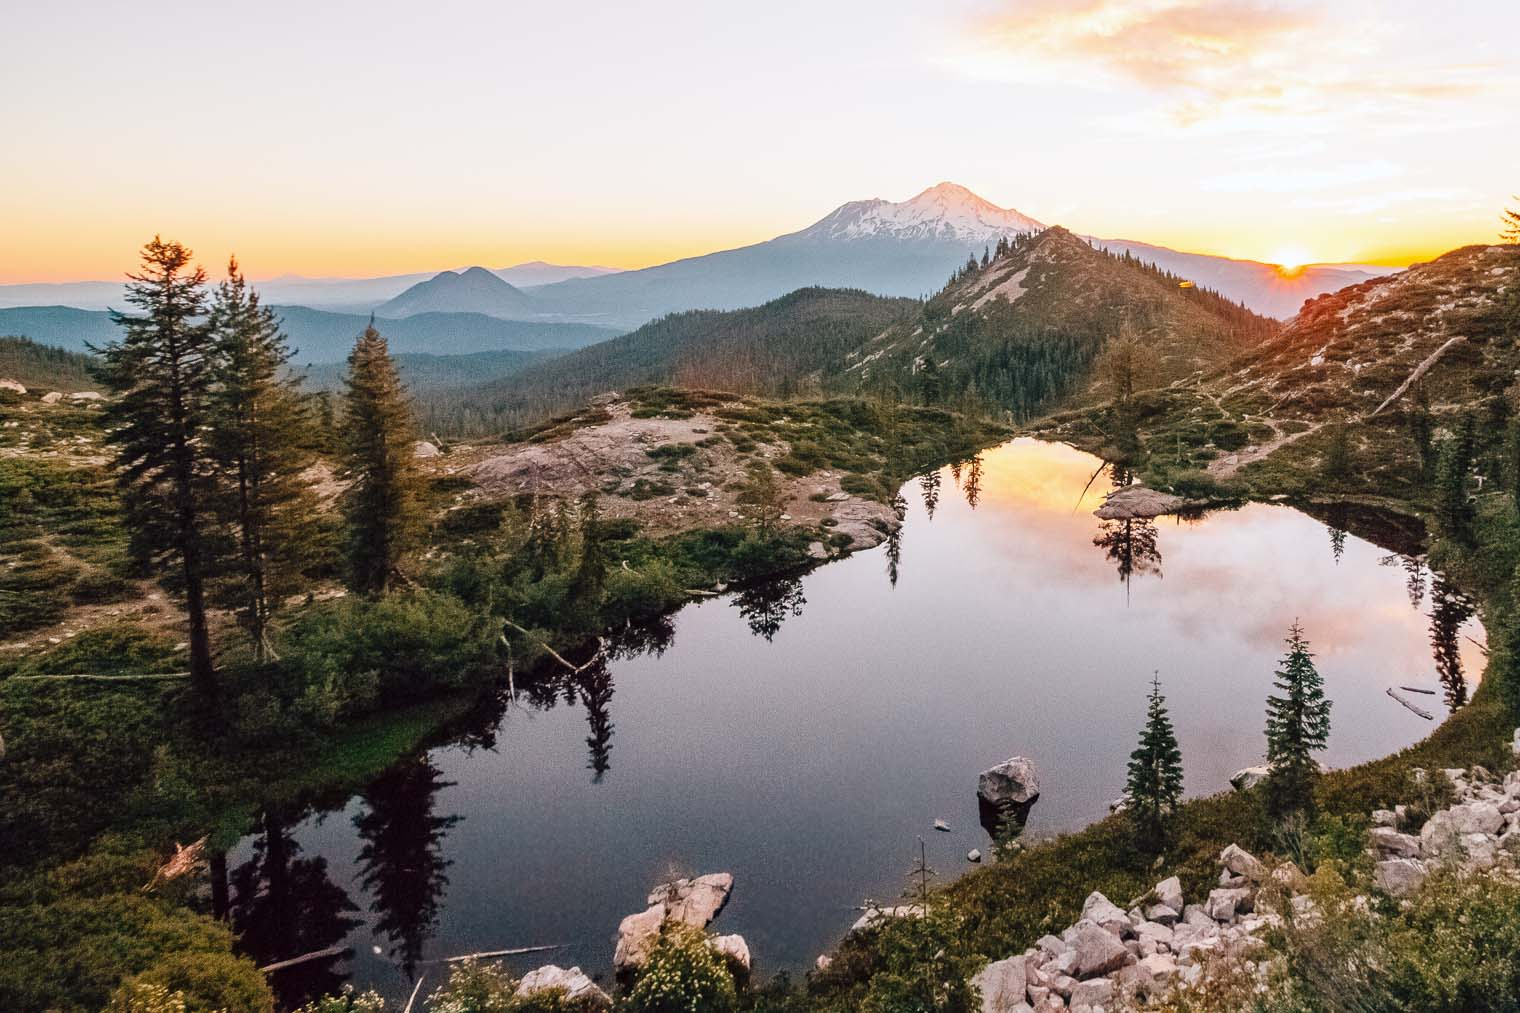 A short and sweet backpacking trip to a heart shaped alpine lake with an epic view of Mt. Shasta